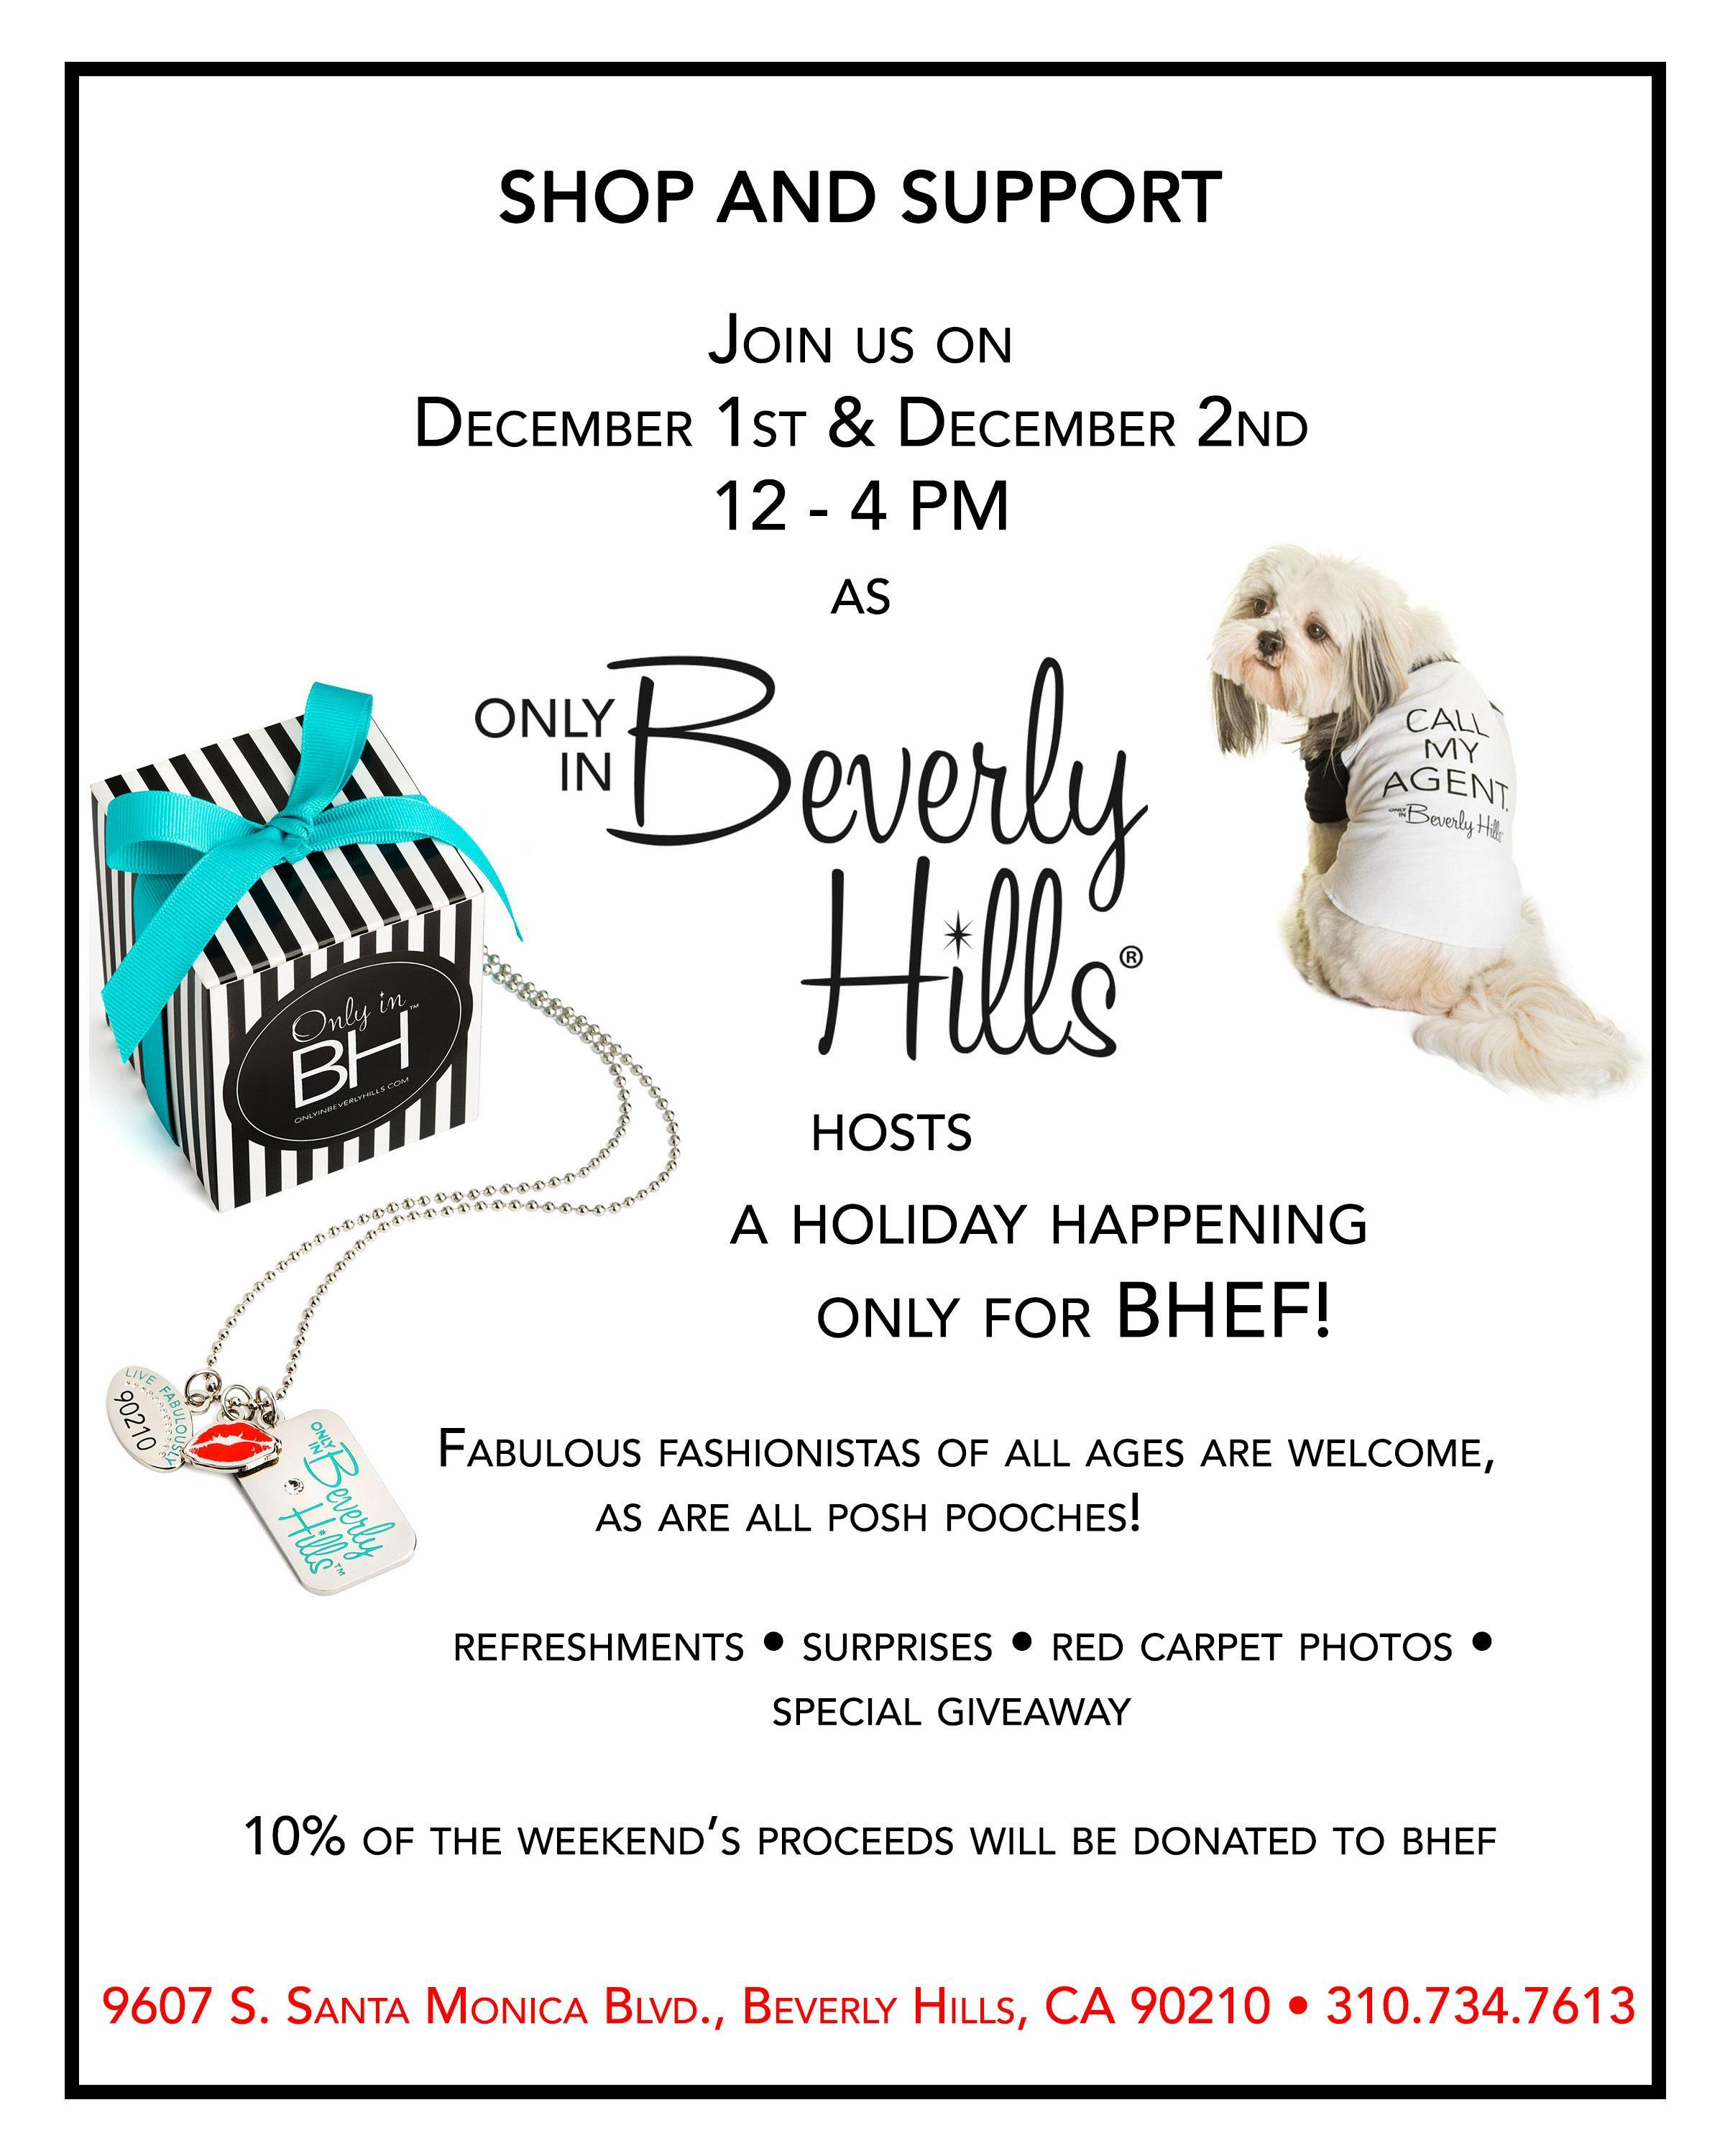 Shop at Only in Beverly Hills on December 1st and 2nd, 2018 and support BHEF!